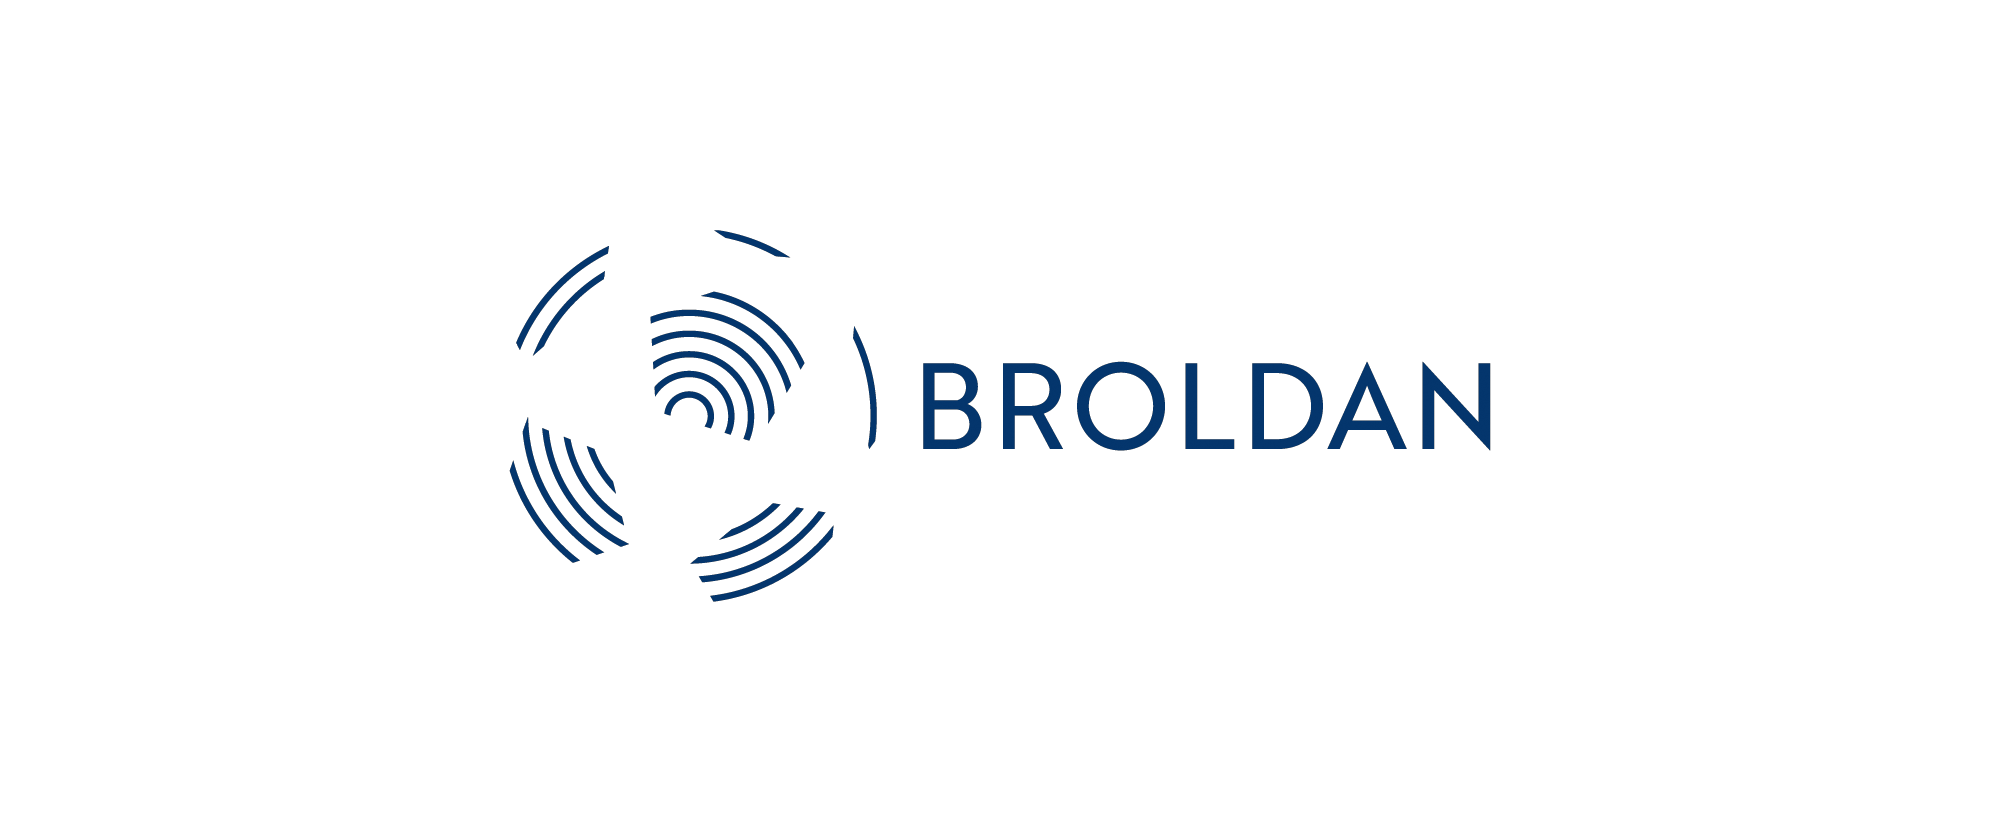 New Logo and Identity for Broldan by OverscoreDesign